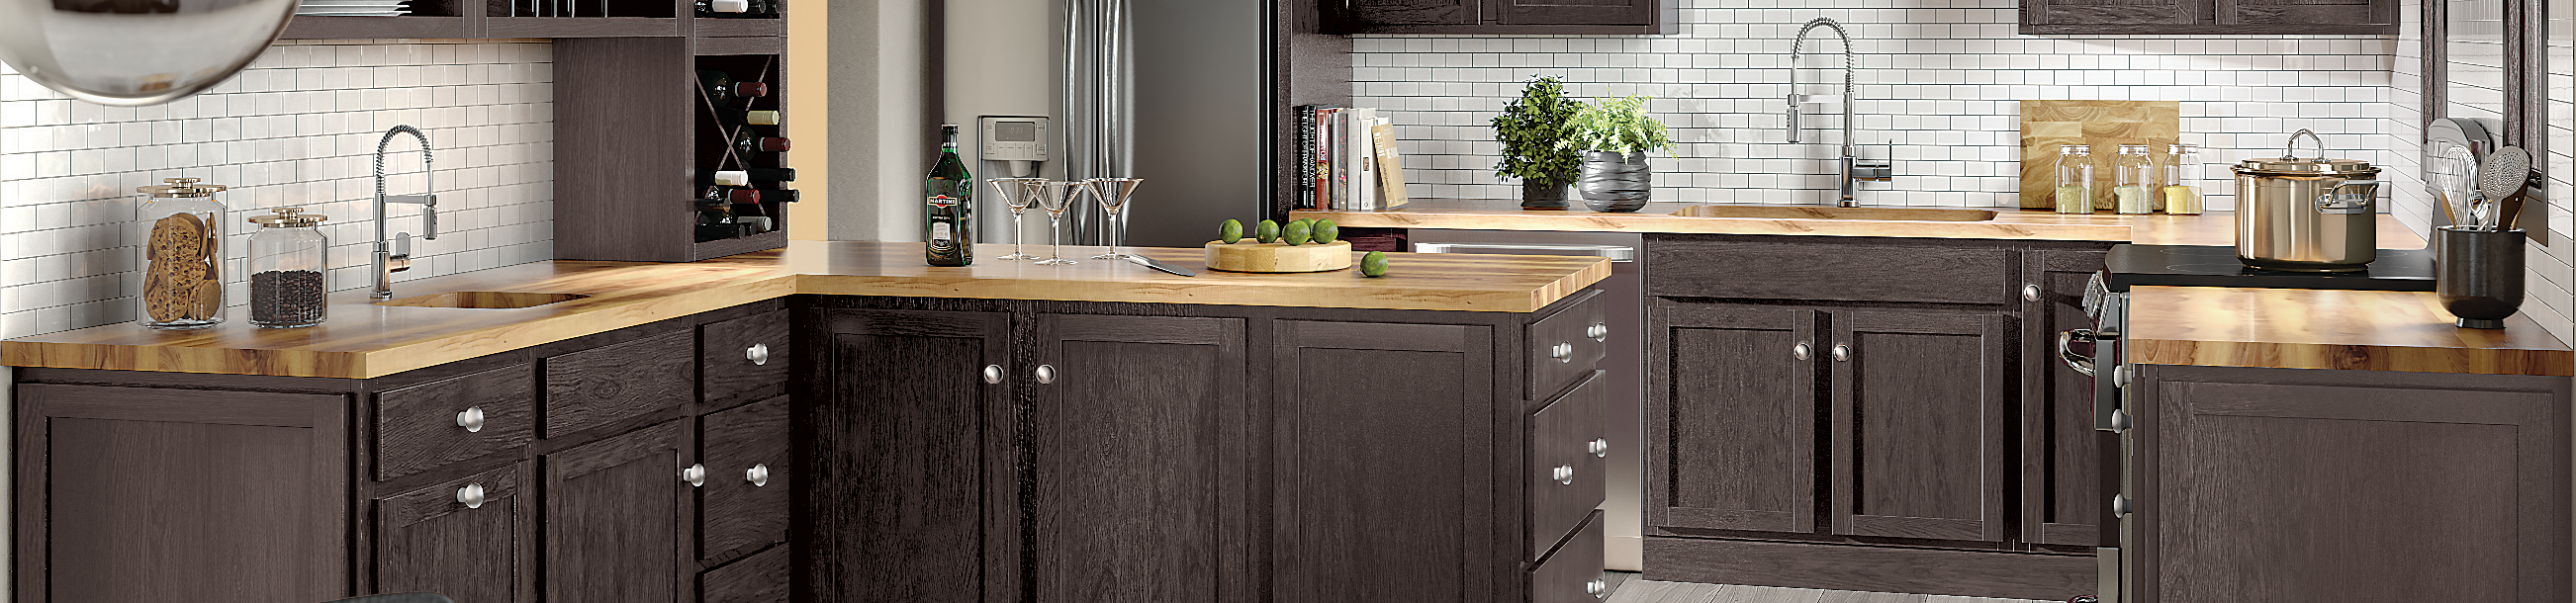 New Kitchen Cabinet Finishes and Styles